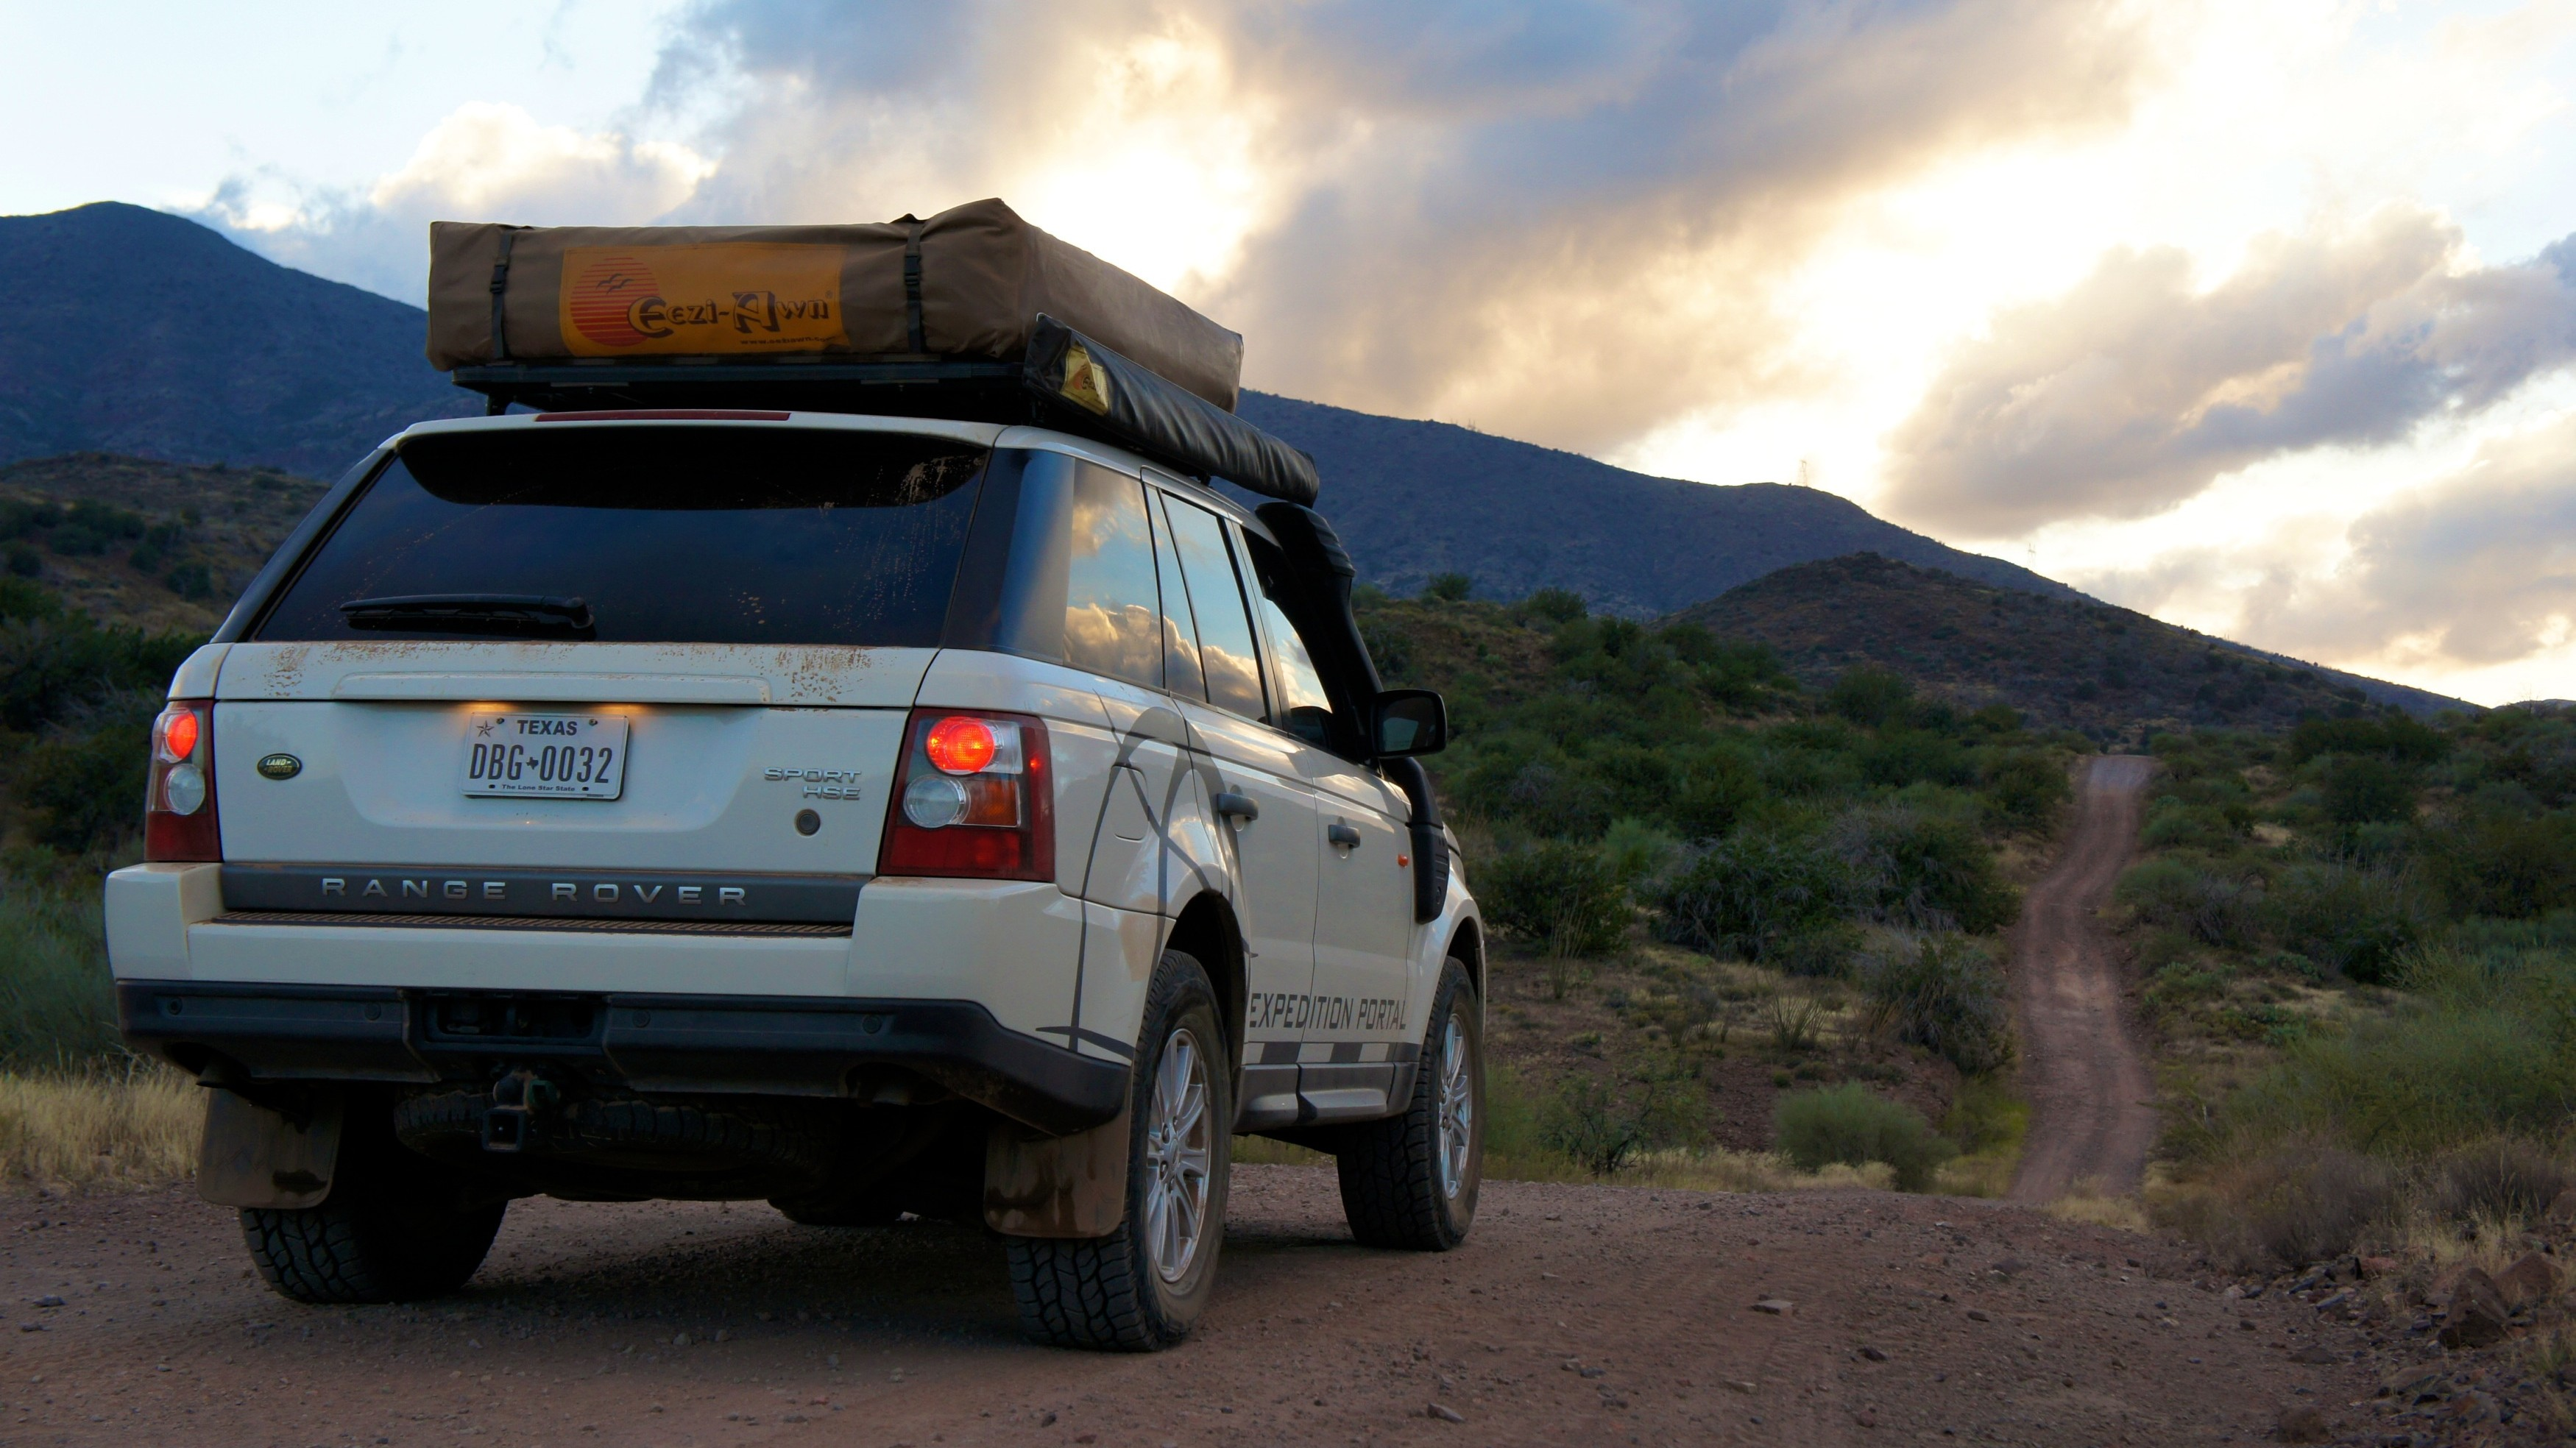 Expedition Portal Project Range Rover Sport – Final Report